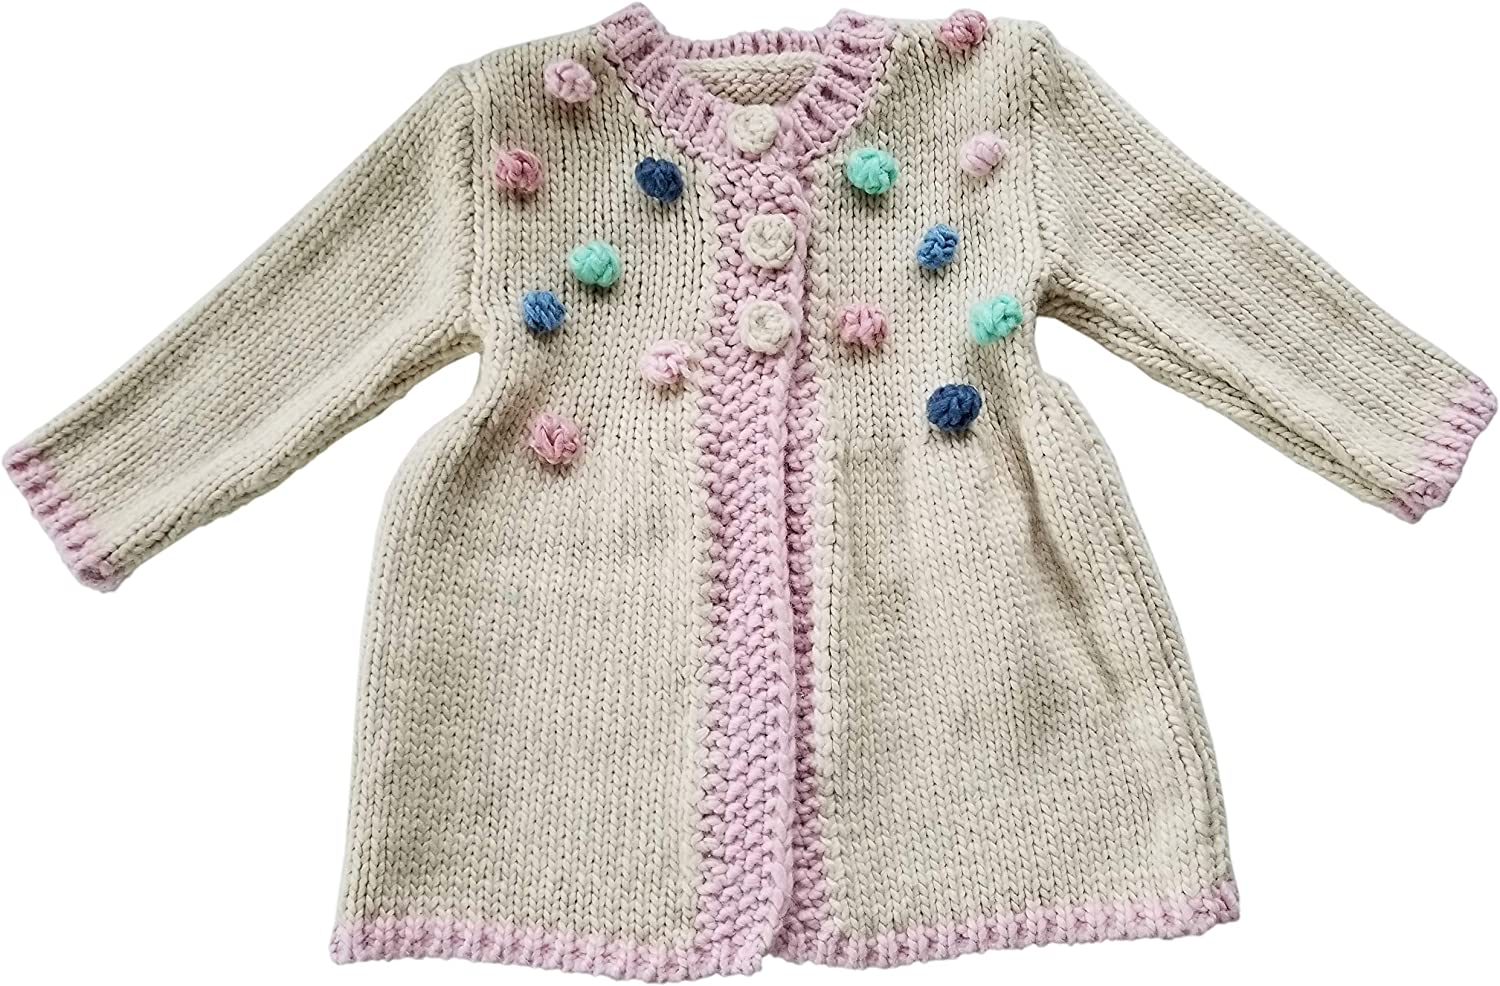 Huggalugs Baby and Toddler Girls Popcorn Dot Knit Beanie Hat or Sweater